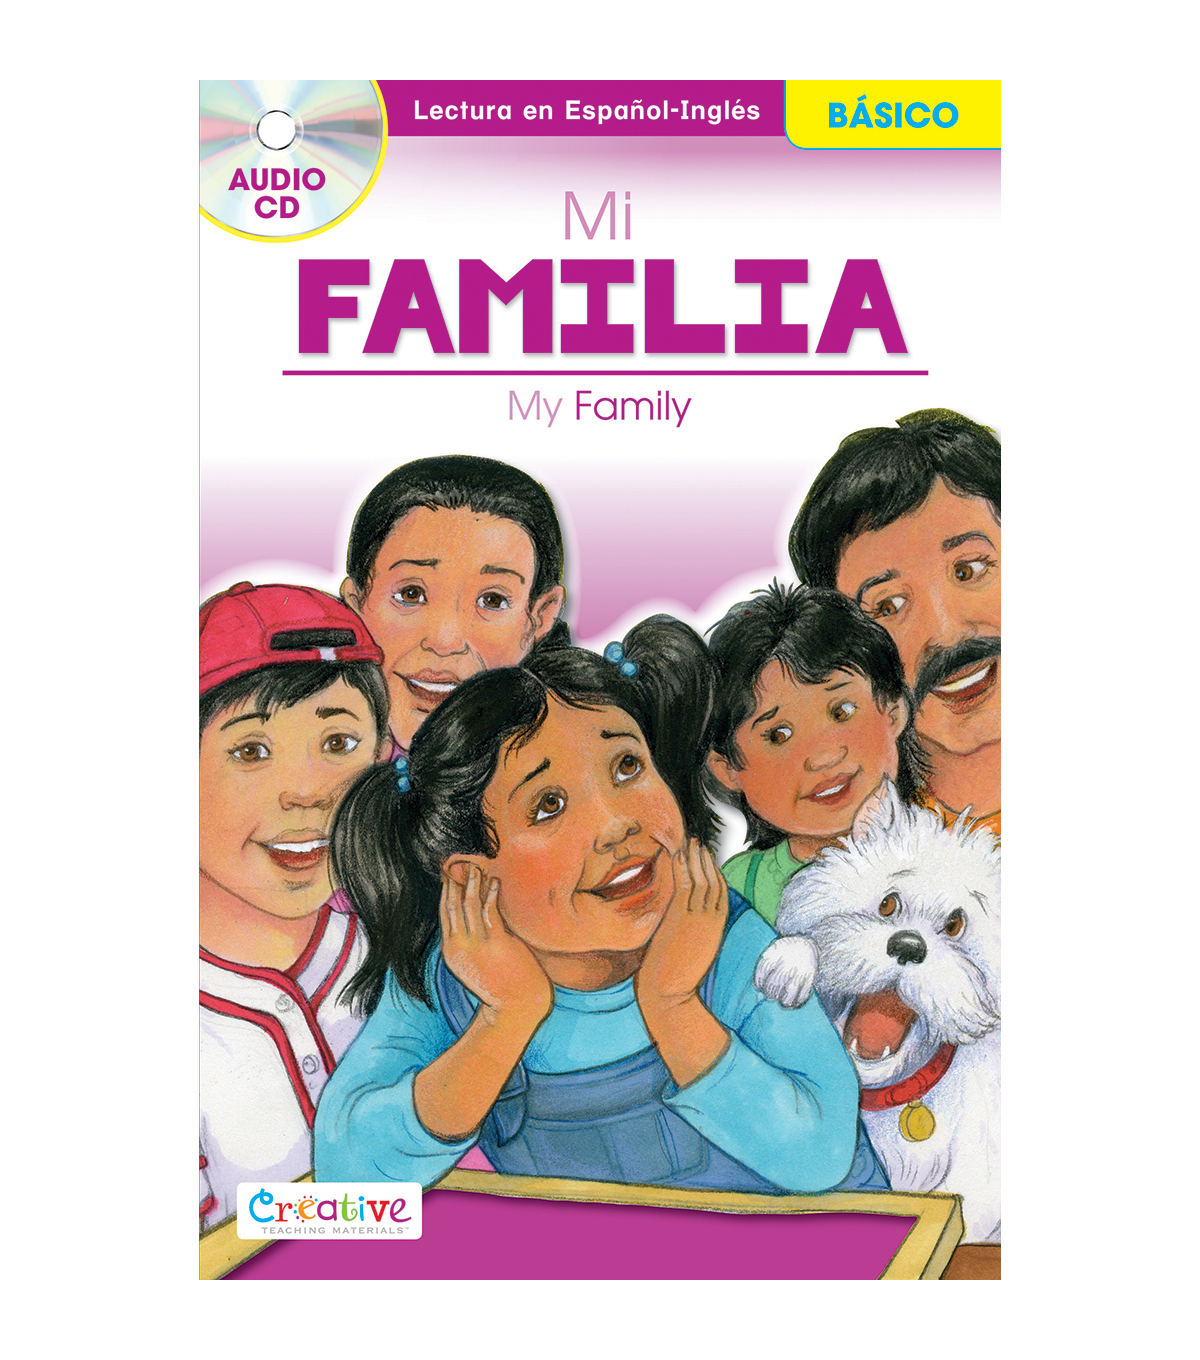 Pbs Publishing Spanish-English Book With CD-My Family